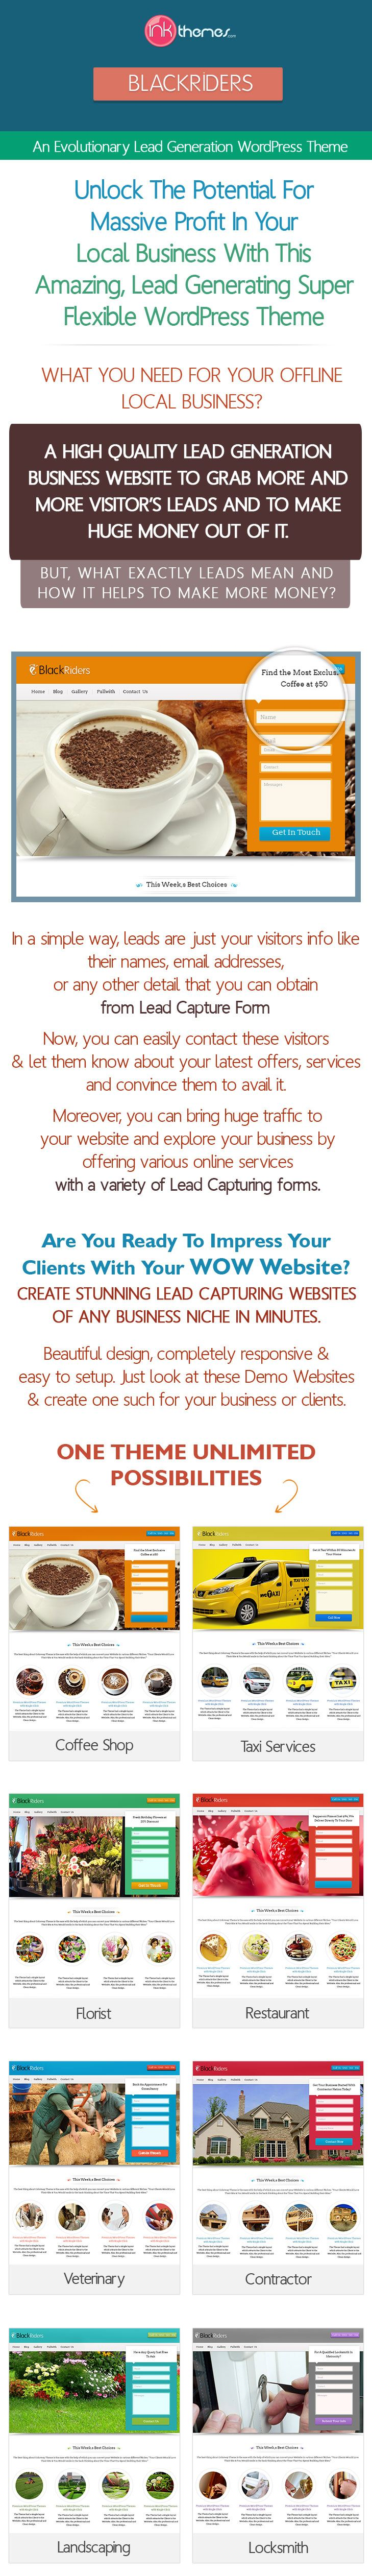 [GET] InkThemes Most POWERFUL Lead Capture WordPress Theme BLACKRIDERS